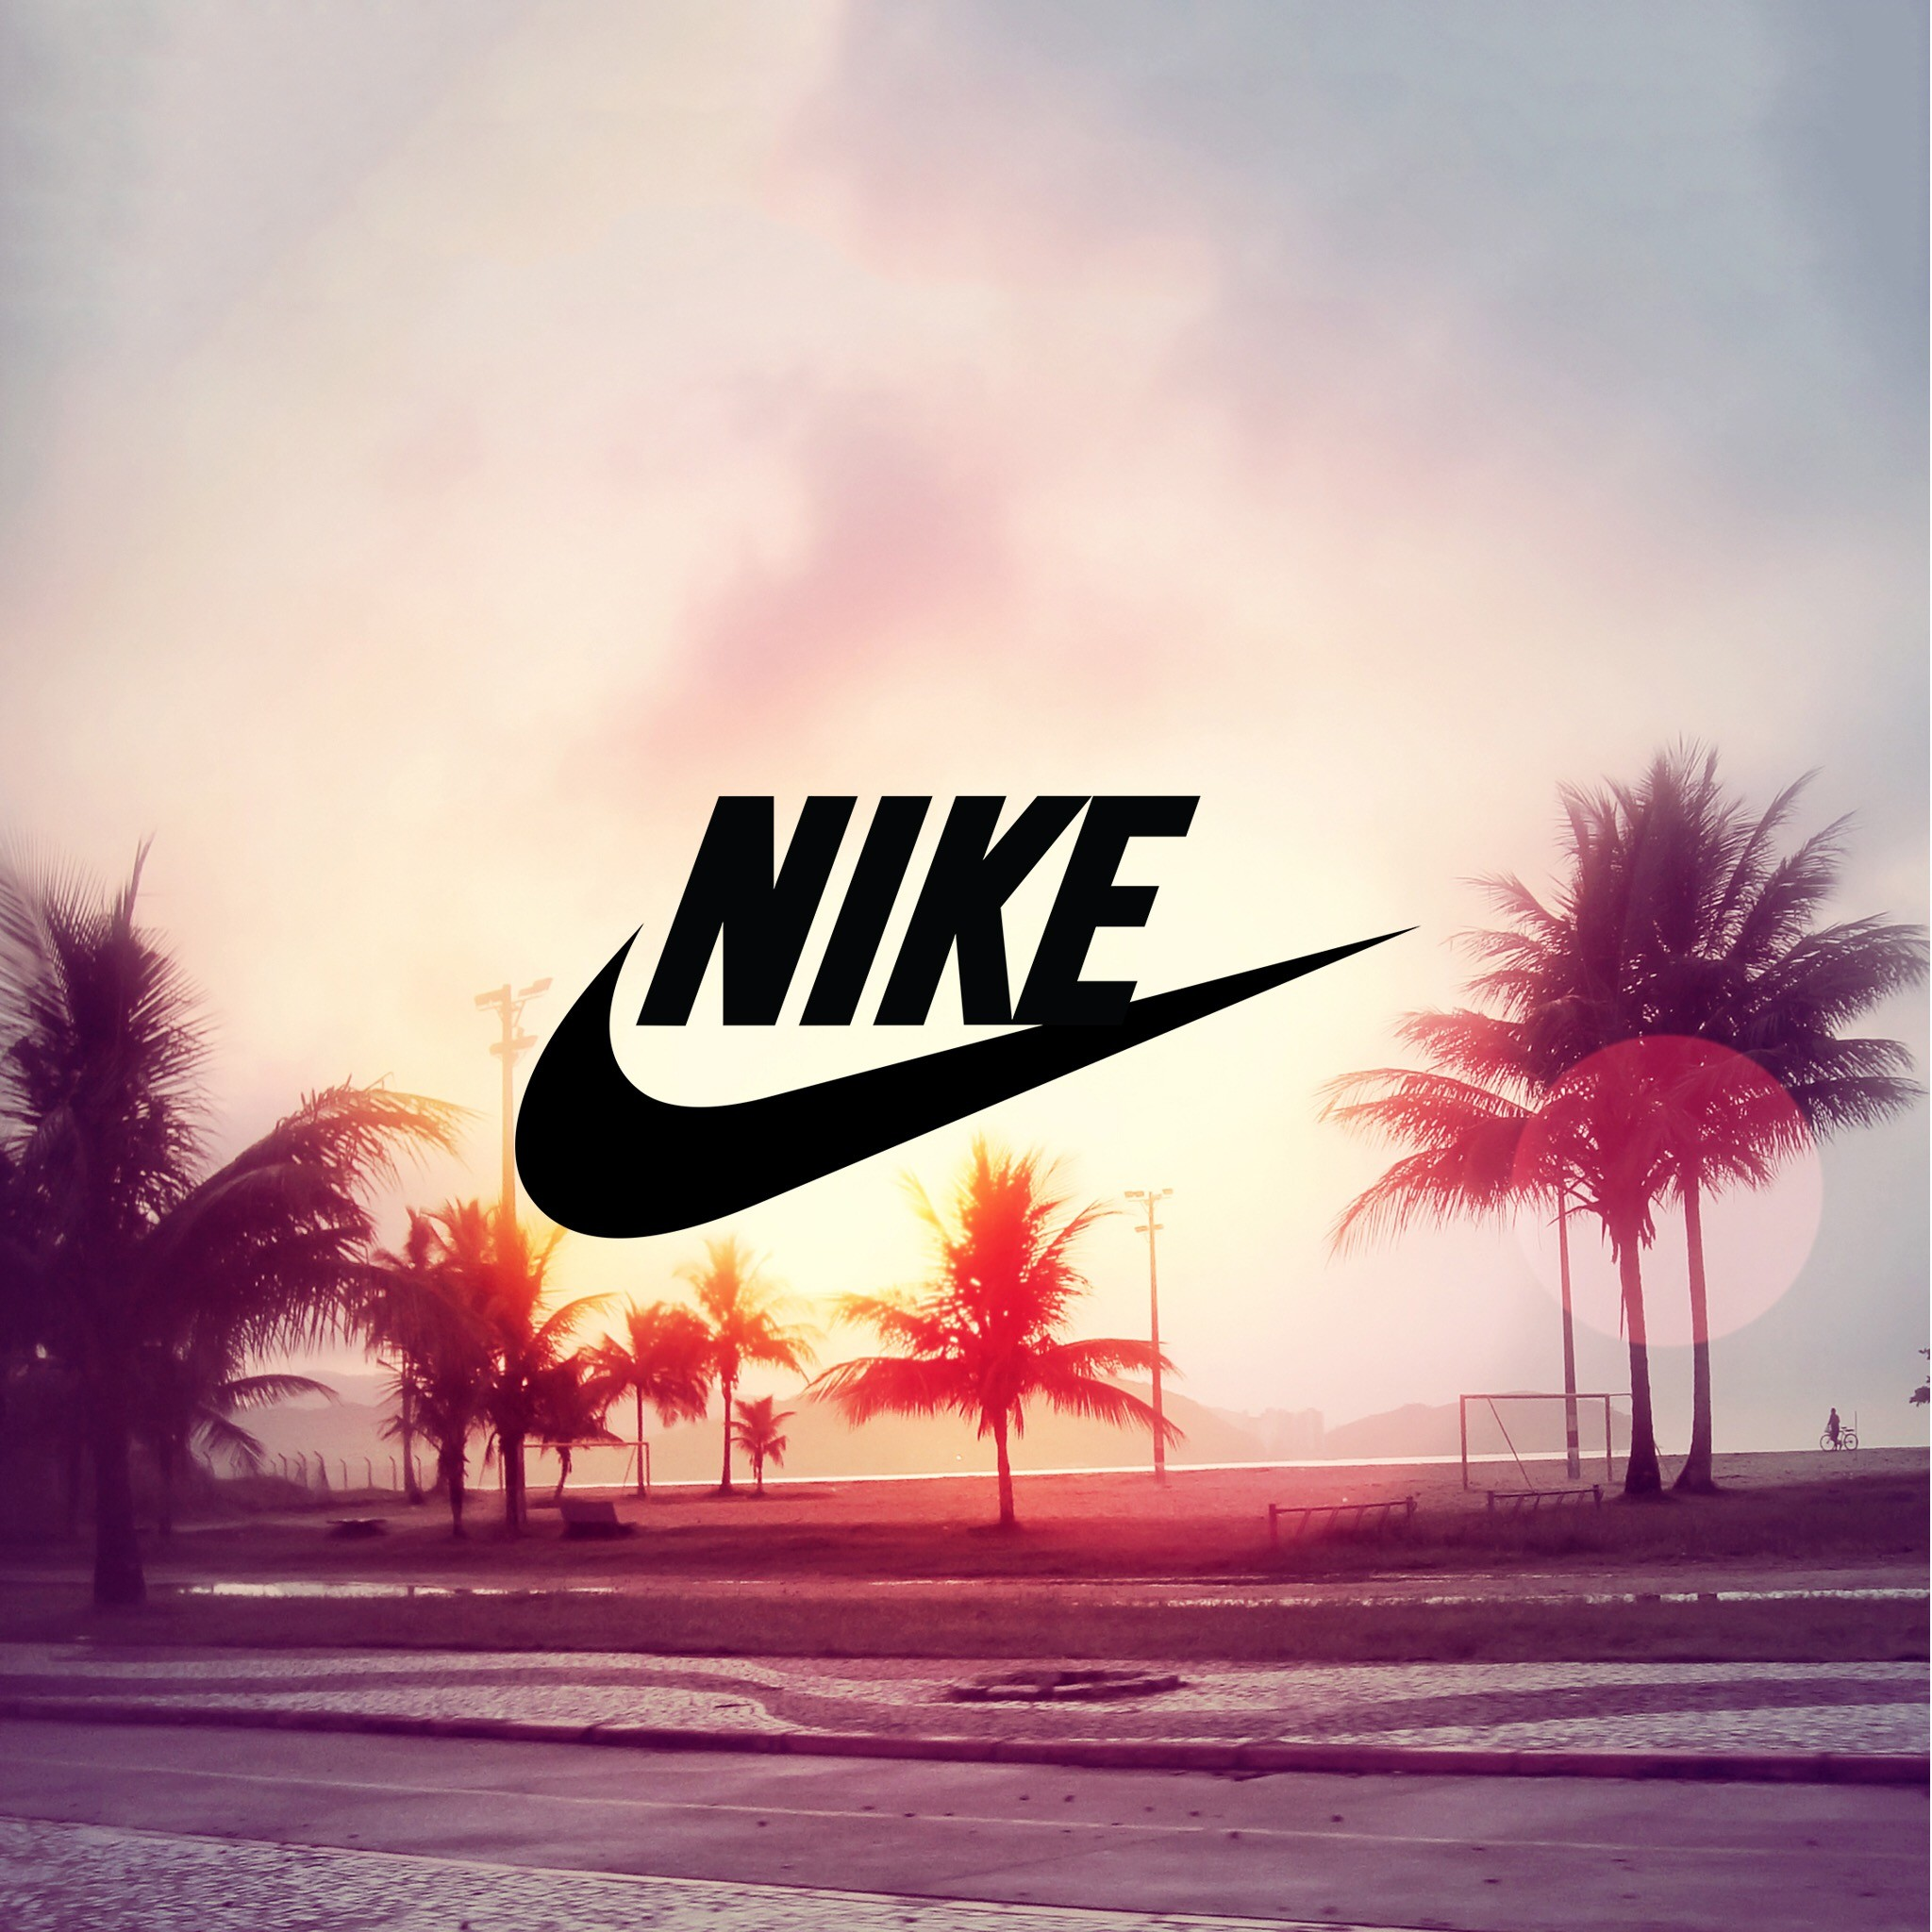 Go places while u still have time… Nike WallpaperIphone …